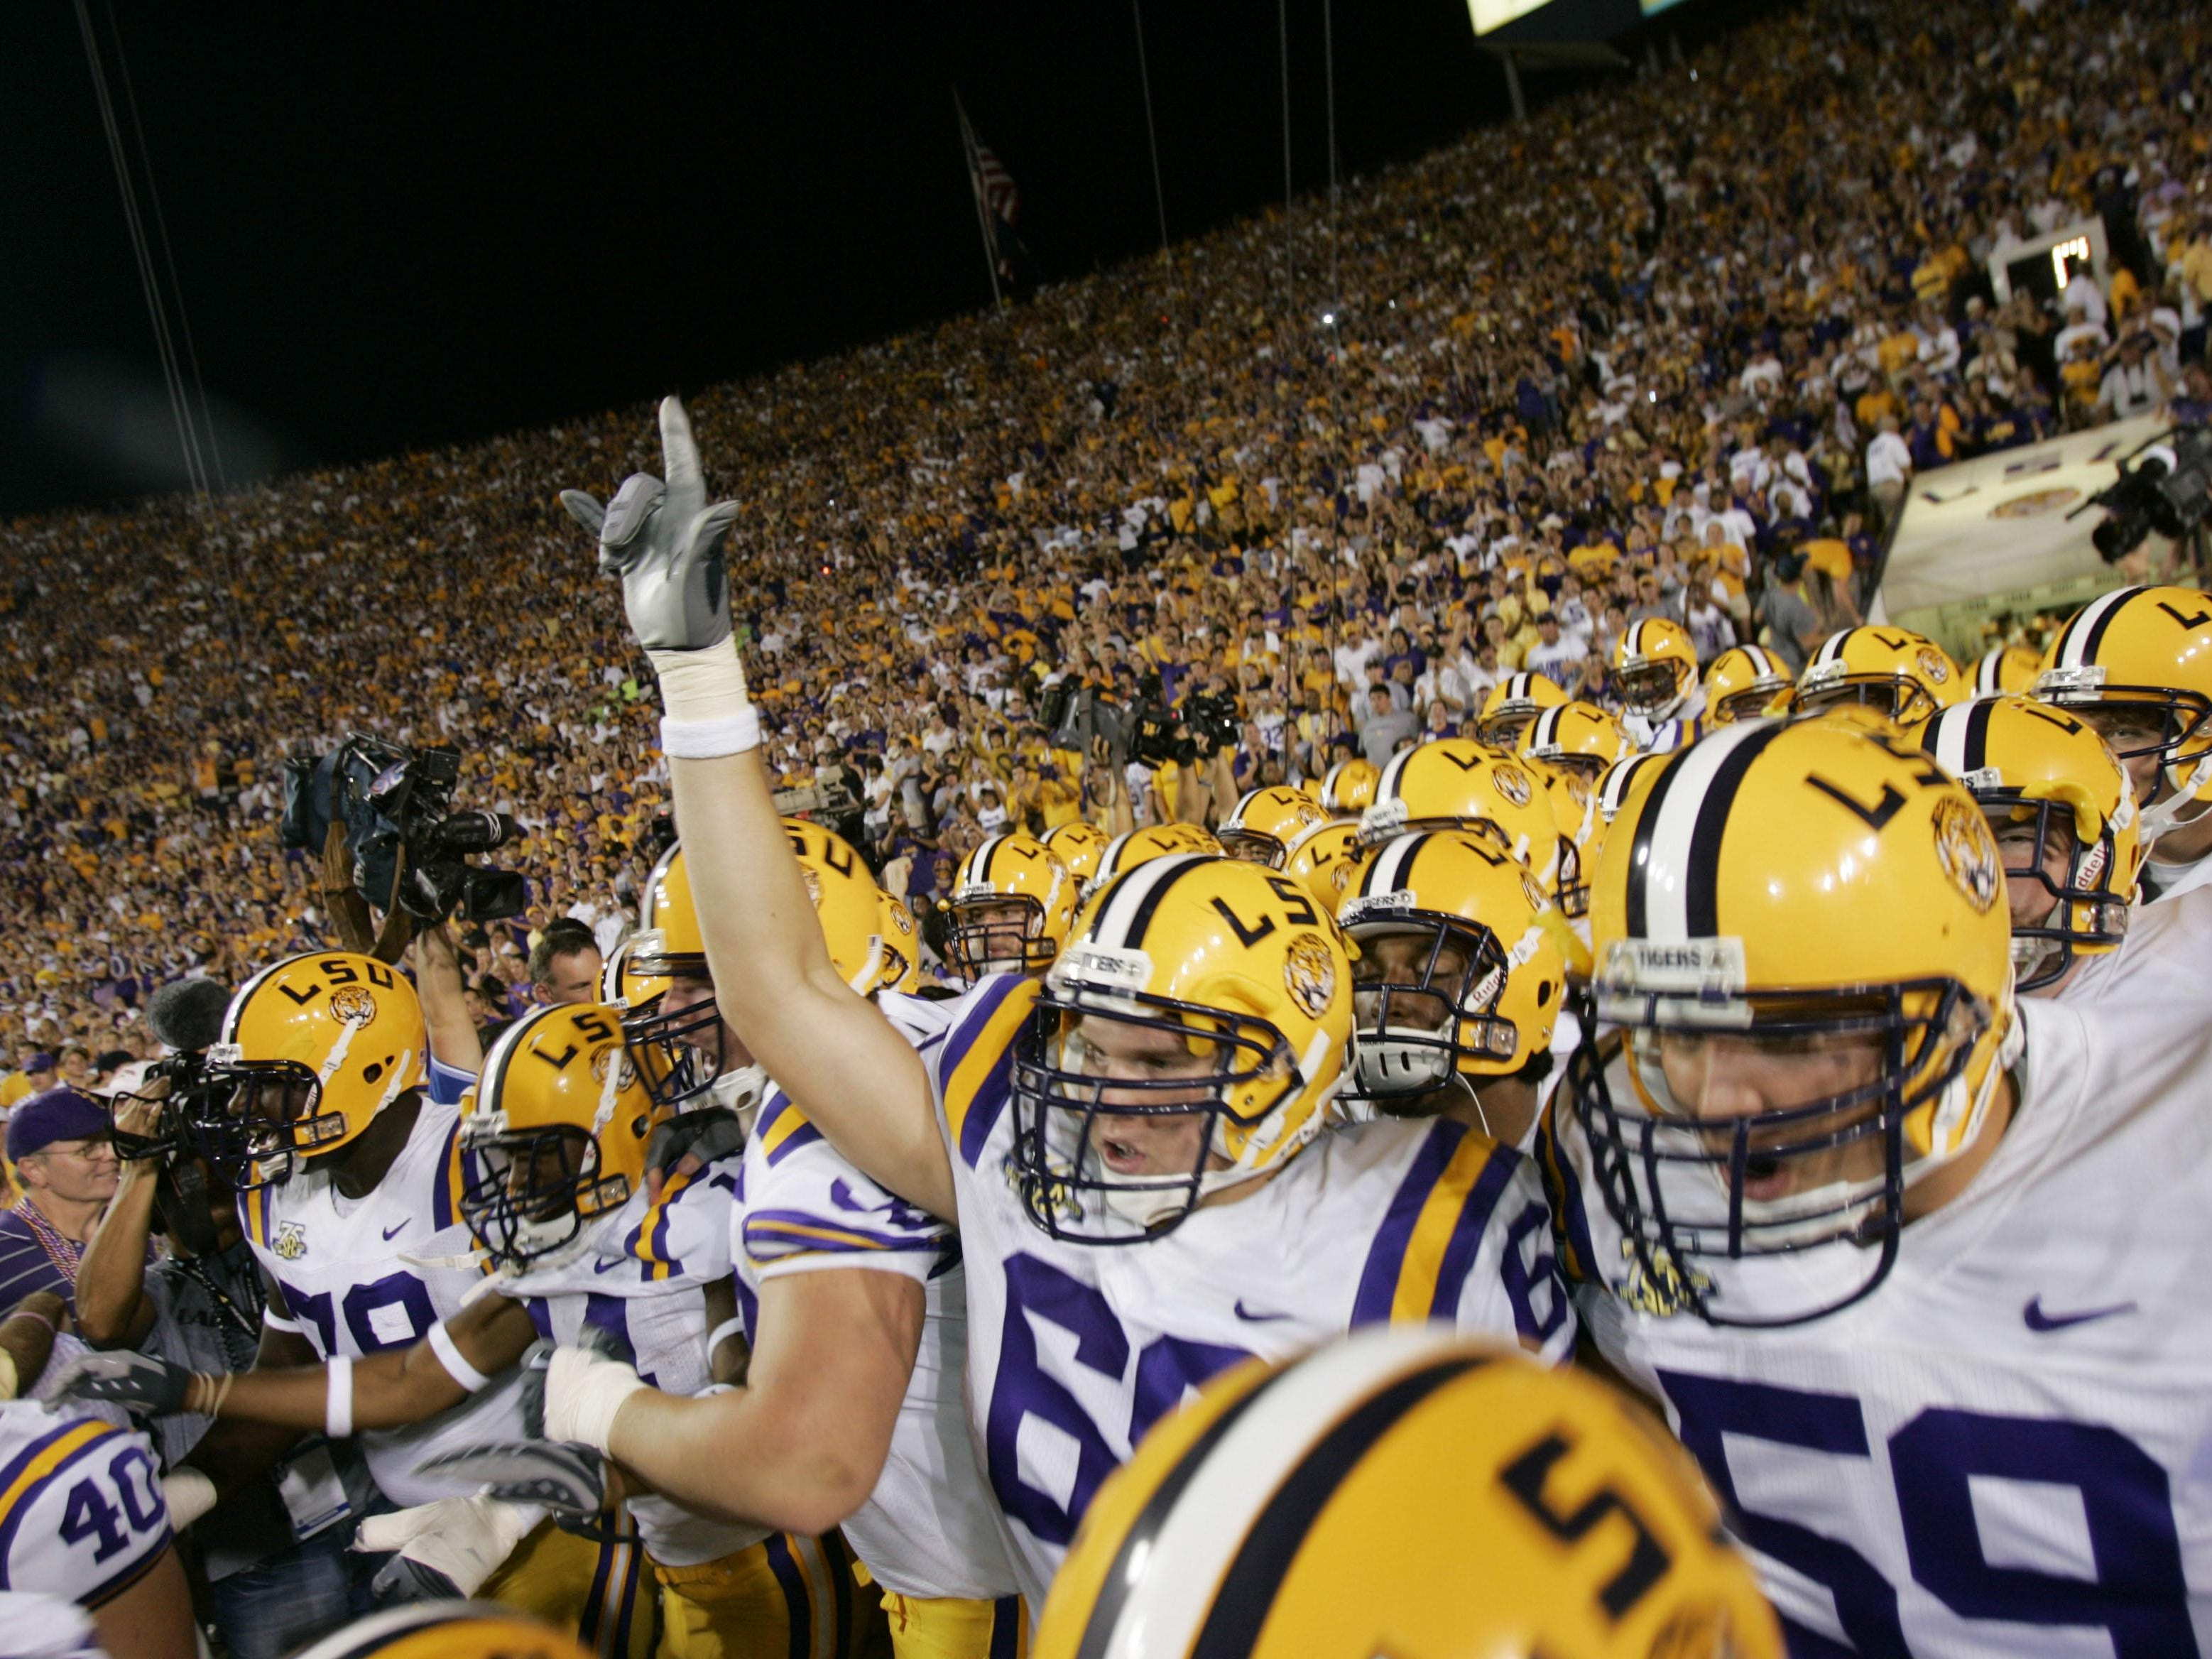 LSU will open the season against BYU in Houston on Sept. 2 at 8:30 p.m.